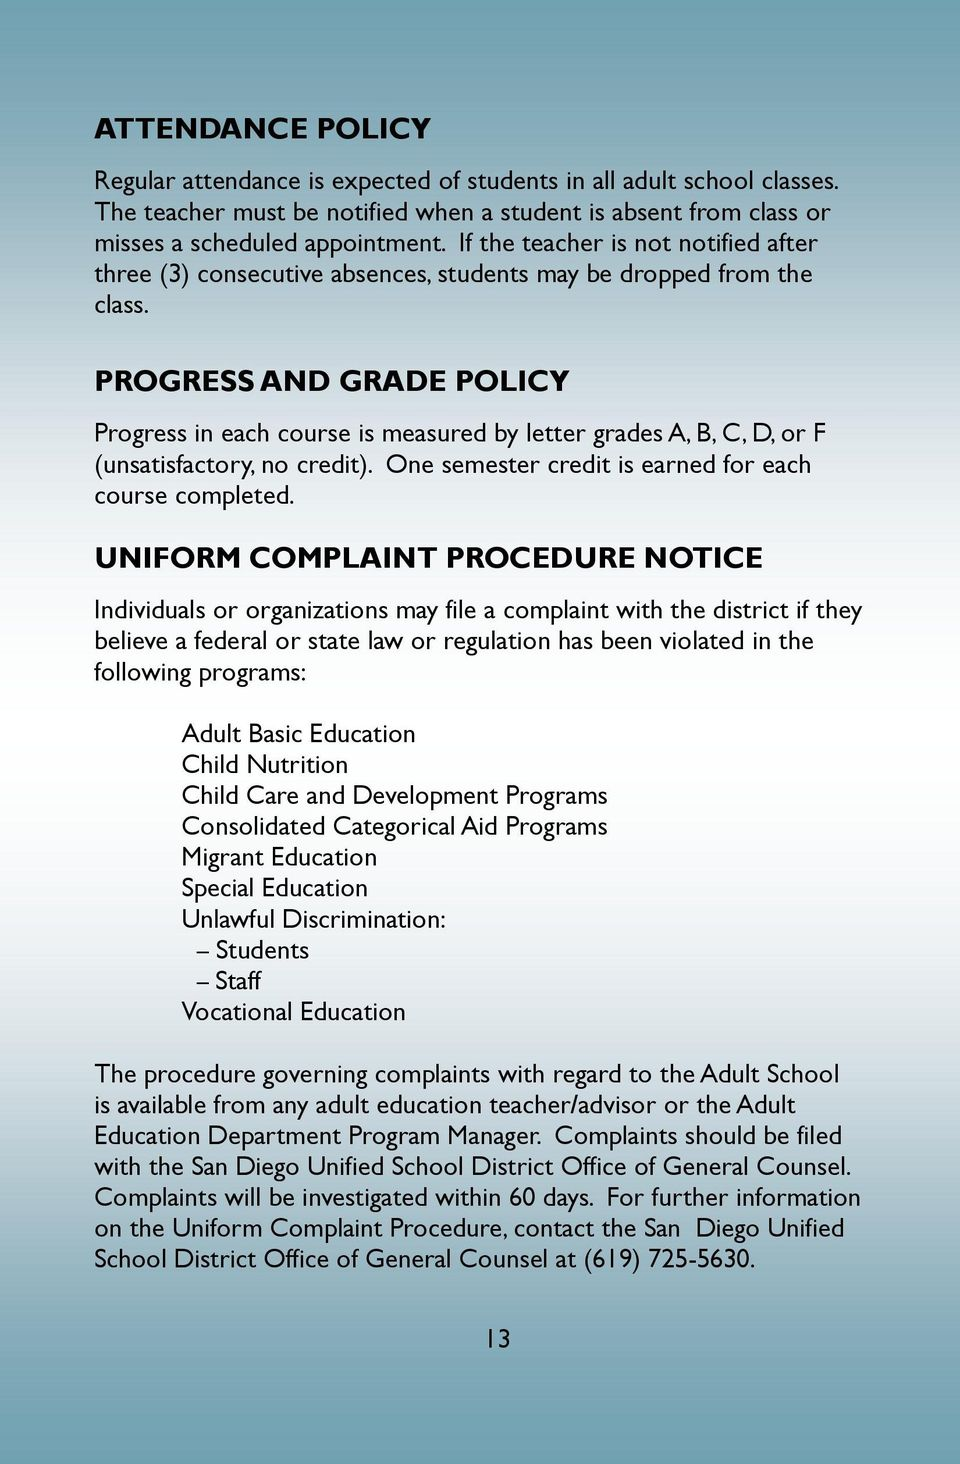 PROGRESS AND GRADE POLICY Progress in each course is measured by letter grades A, B, C, D, or F (unsatisfactory, no credit). One semester credit is earned for each course completed.